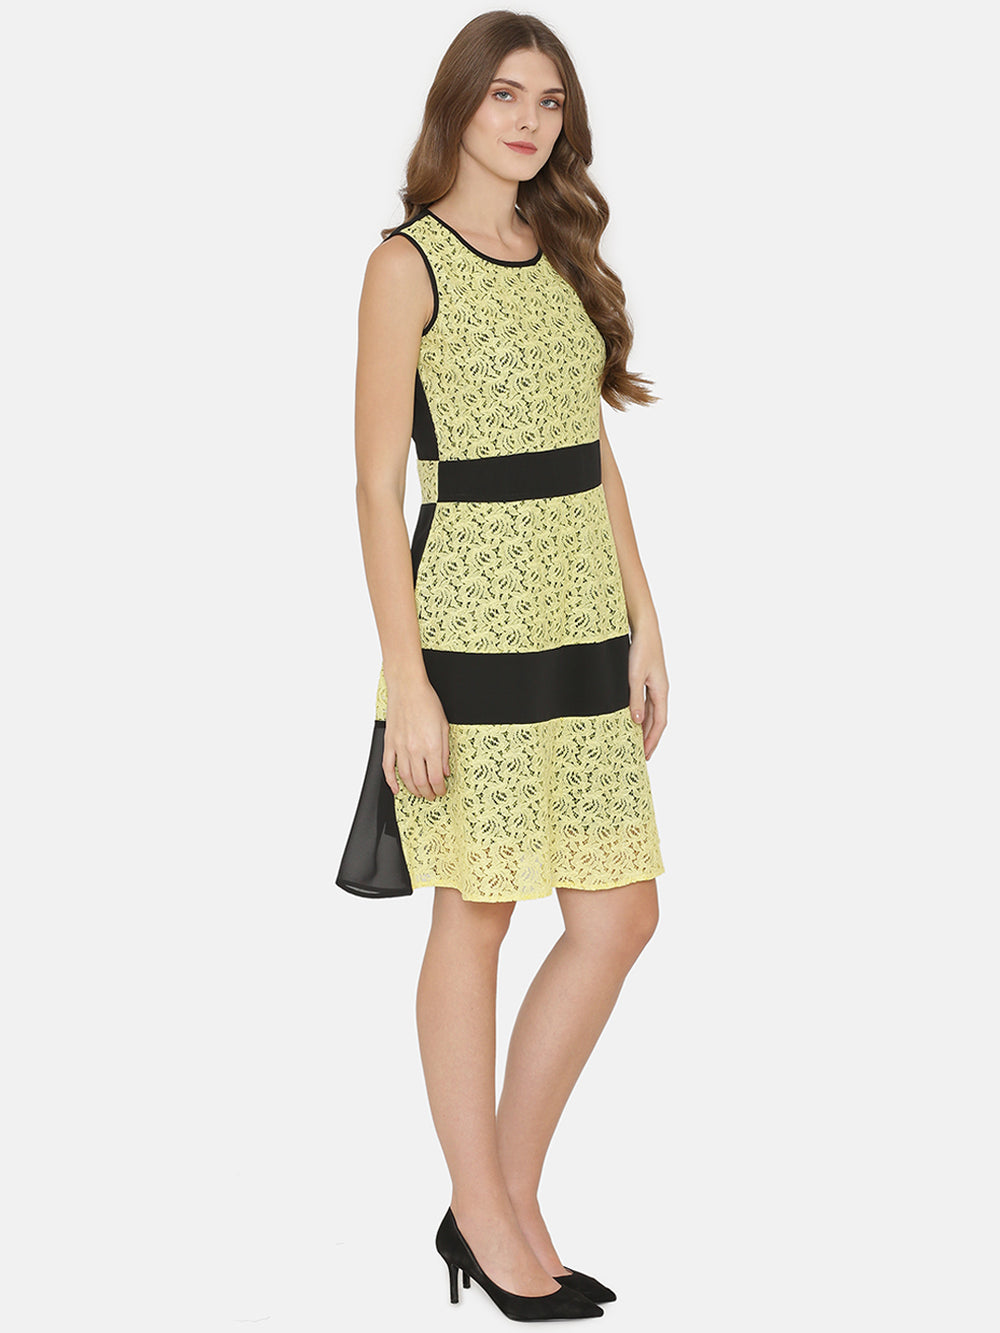 eyelet Women Yellow Printed Fit and Flare Dress